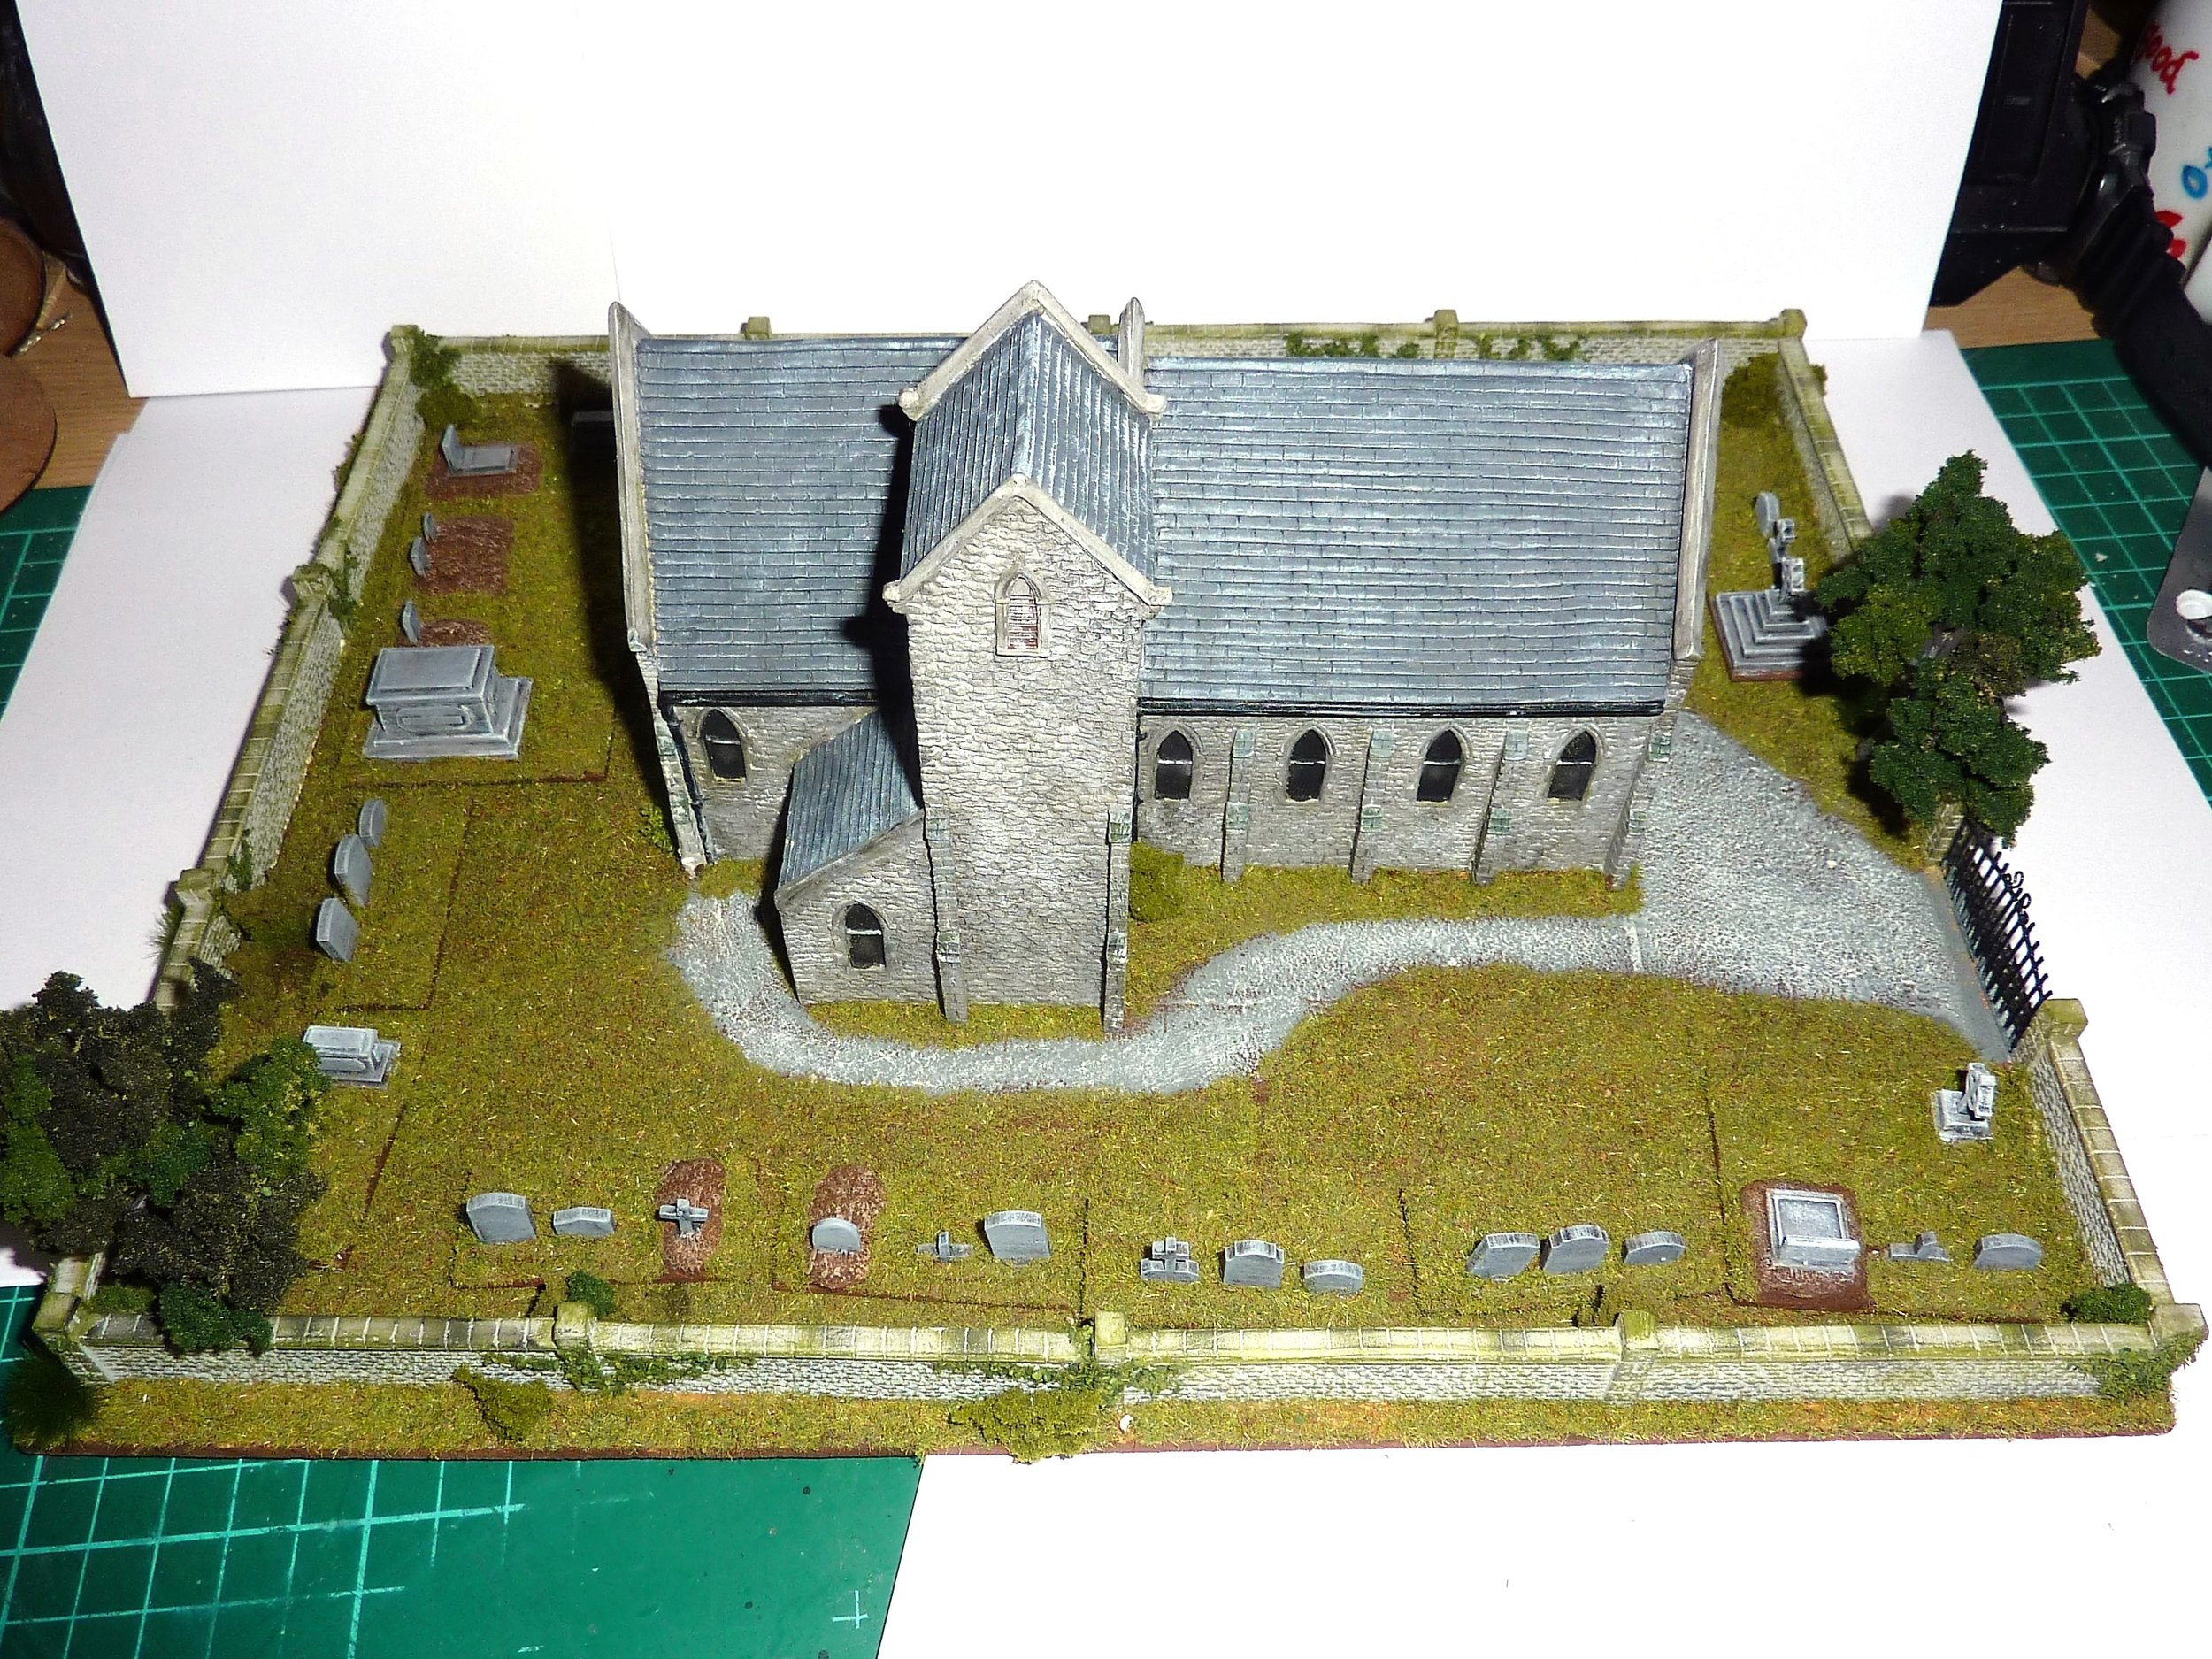 Well it is a Sunday: a church and graveyard from Jason